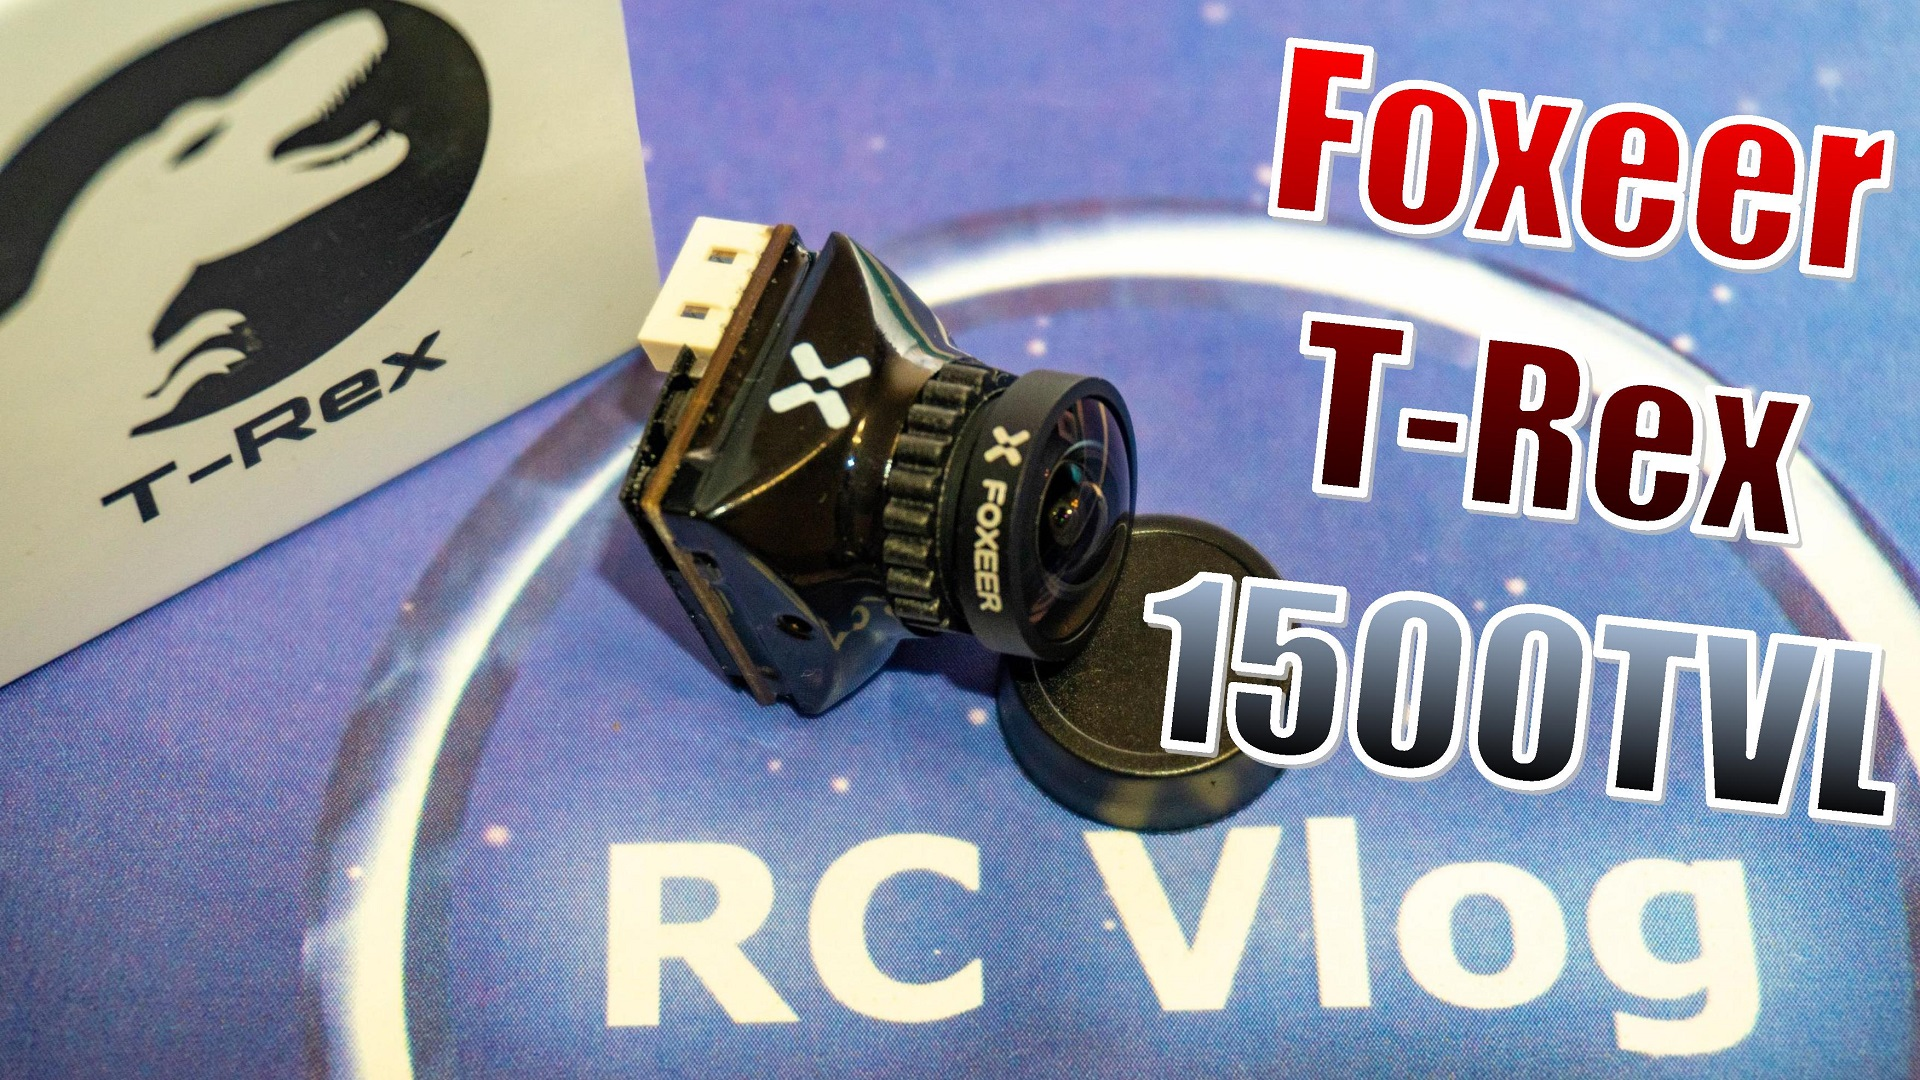 Foxeer T Rex Micro 1500TVL Super Low Latency Super WDR 4:3/16:9 PAL/NTSC Switchable FPV Camera Support OSD & Menu Remote Control for FPV RC Racing Drone